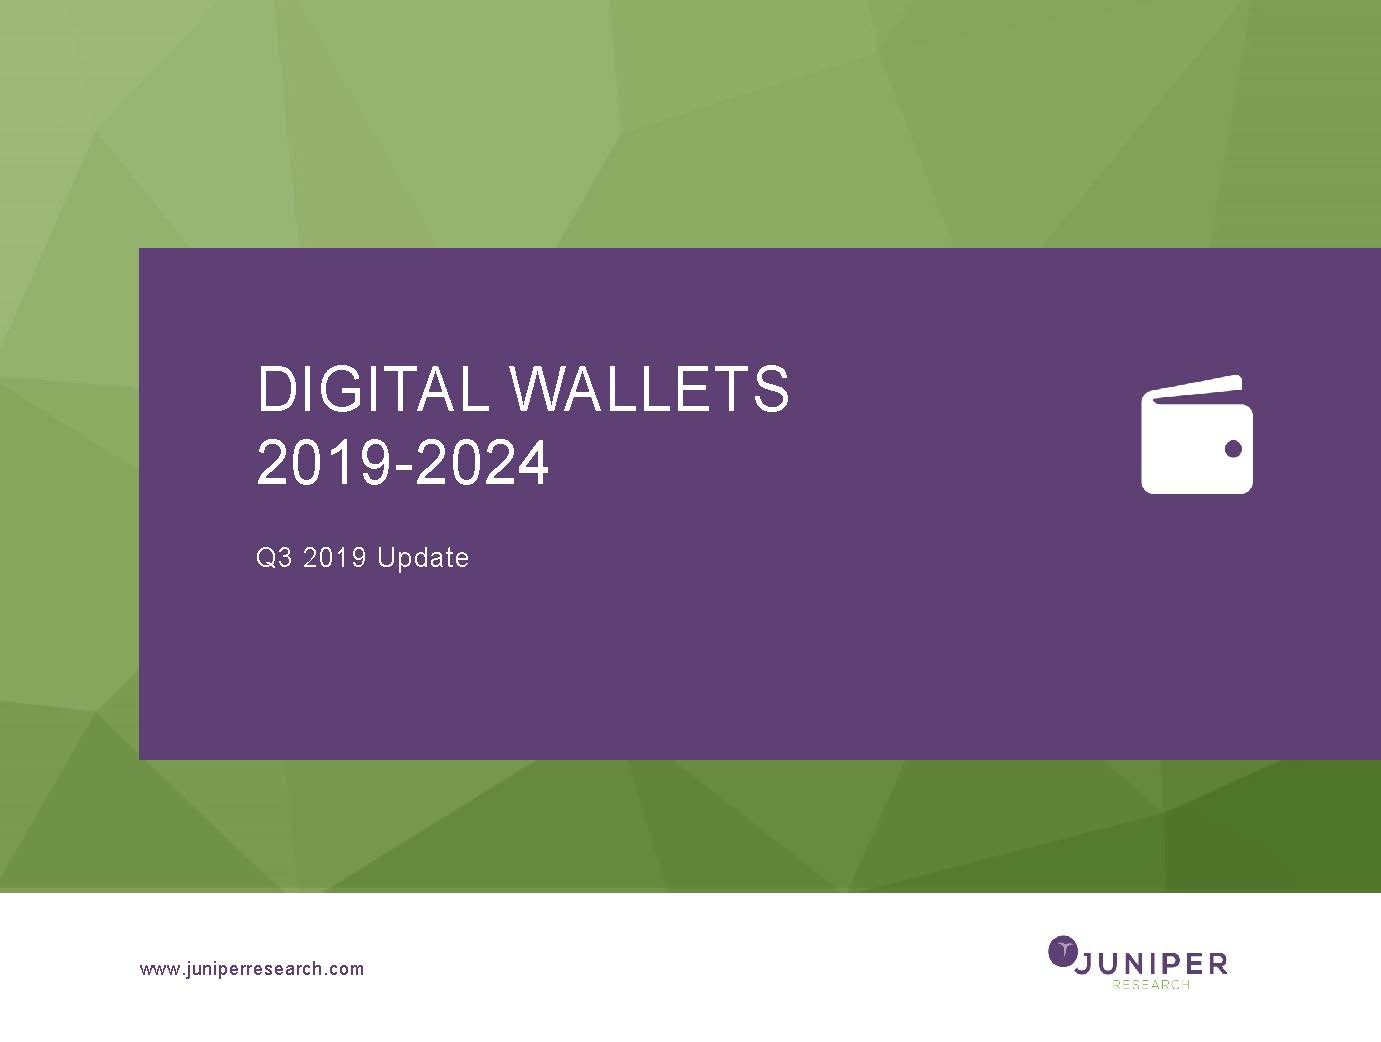 Digital Wallets - Q3 2019